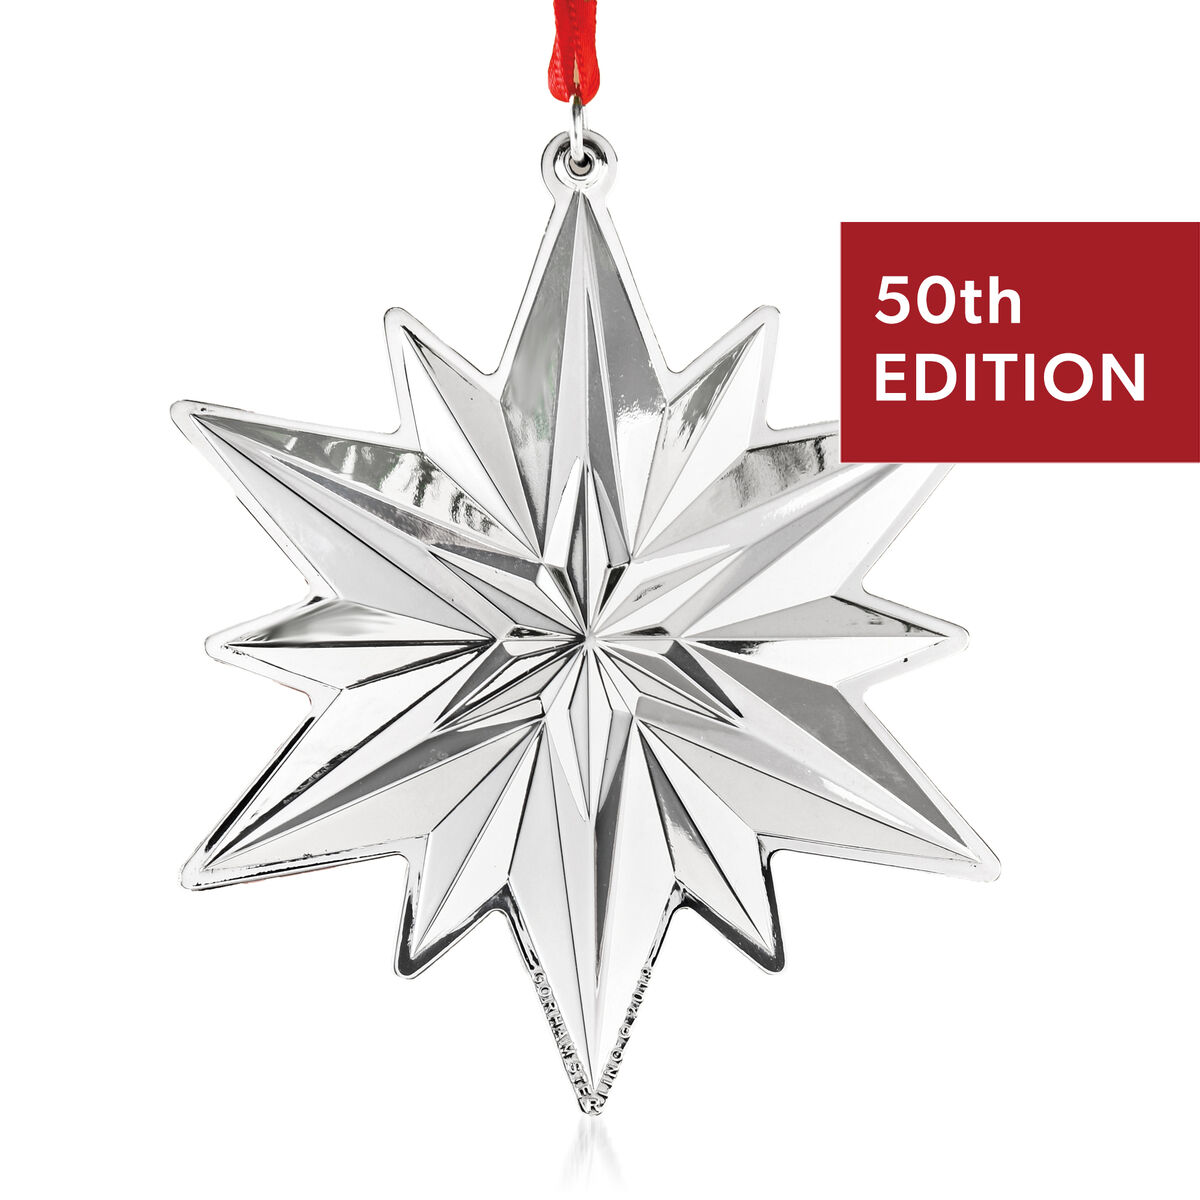 Gorham 2019 Annual Sterling Silver Snowflake Ornament - 50th Edition